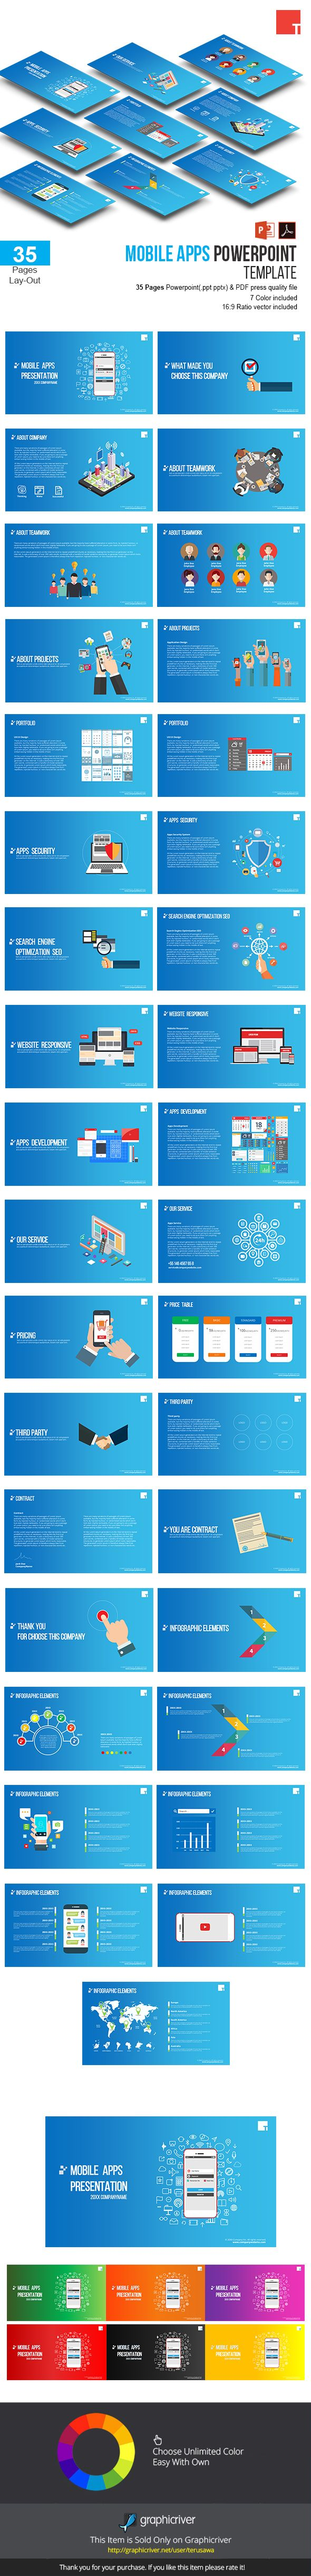 Mobile apps powerpoint template creative powerpoint templates mobile apps powerpoint template creative powerpoint templates toneelgroepblik